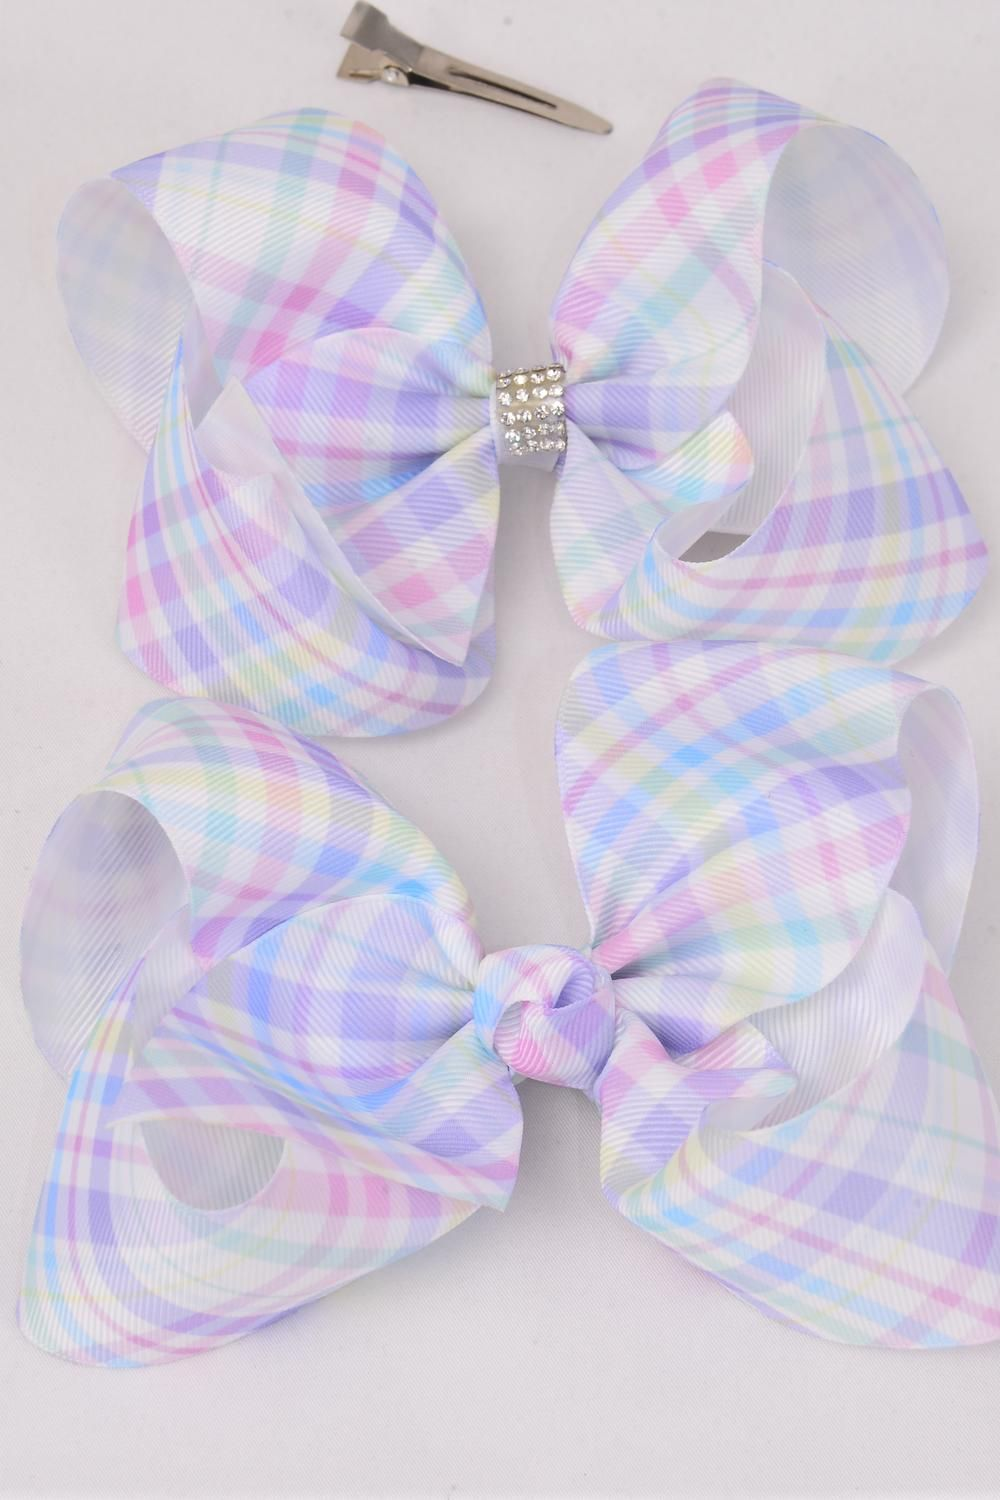 "Hair Bow Extra Jumbo Gingham Center Clear Stones Grosgrain Bow-tie/DZ **Alligator Clip** Size-6""x 5"" Wide,6 of each Pattern Asst,Clip Strip & UPC Code"